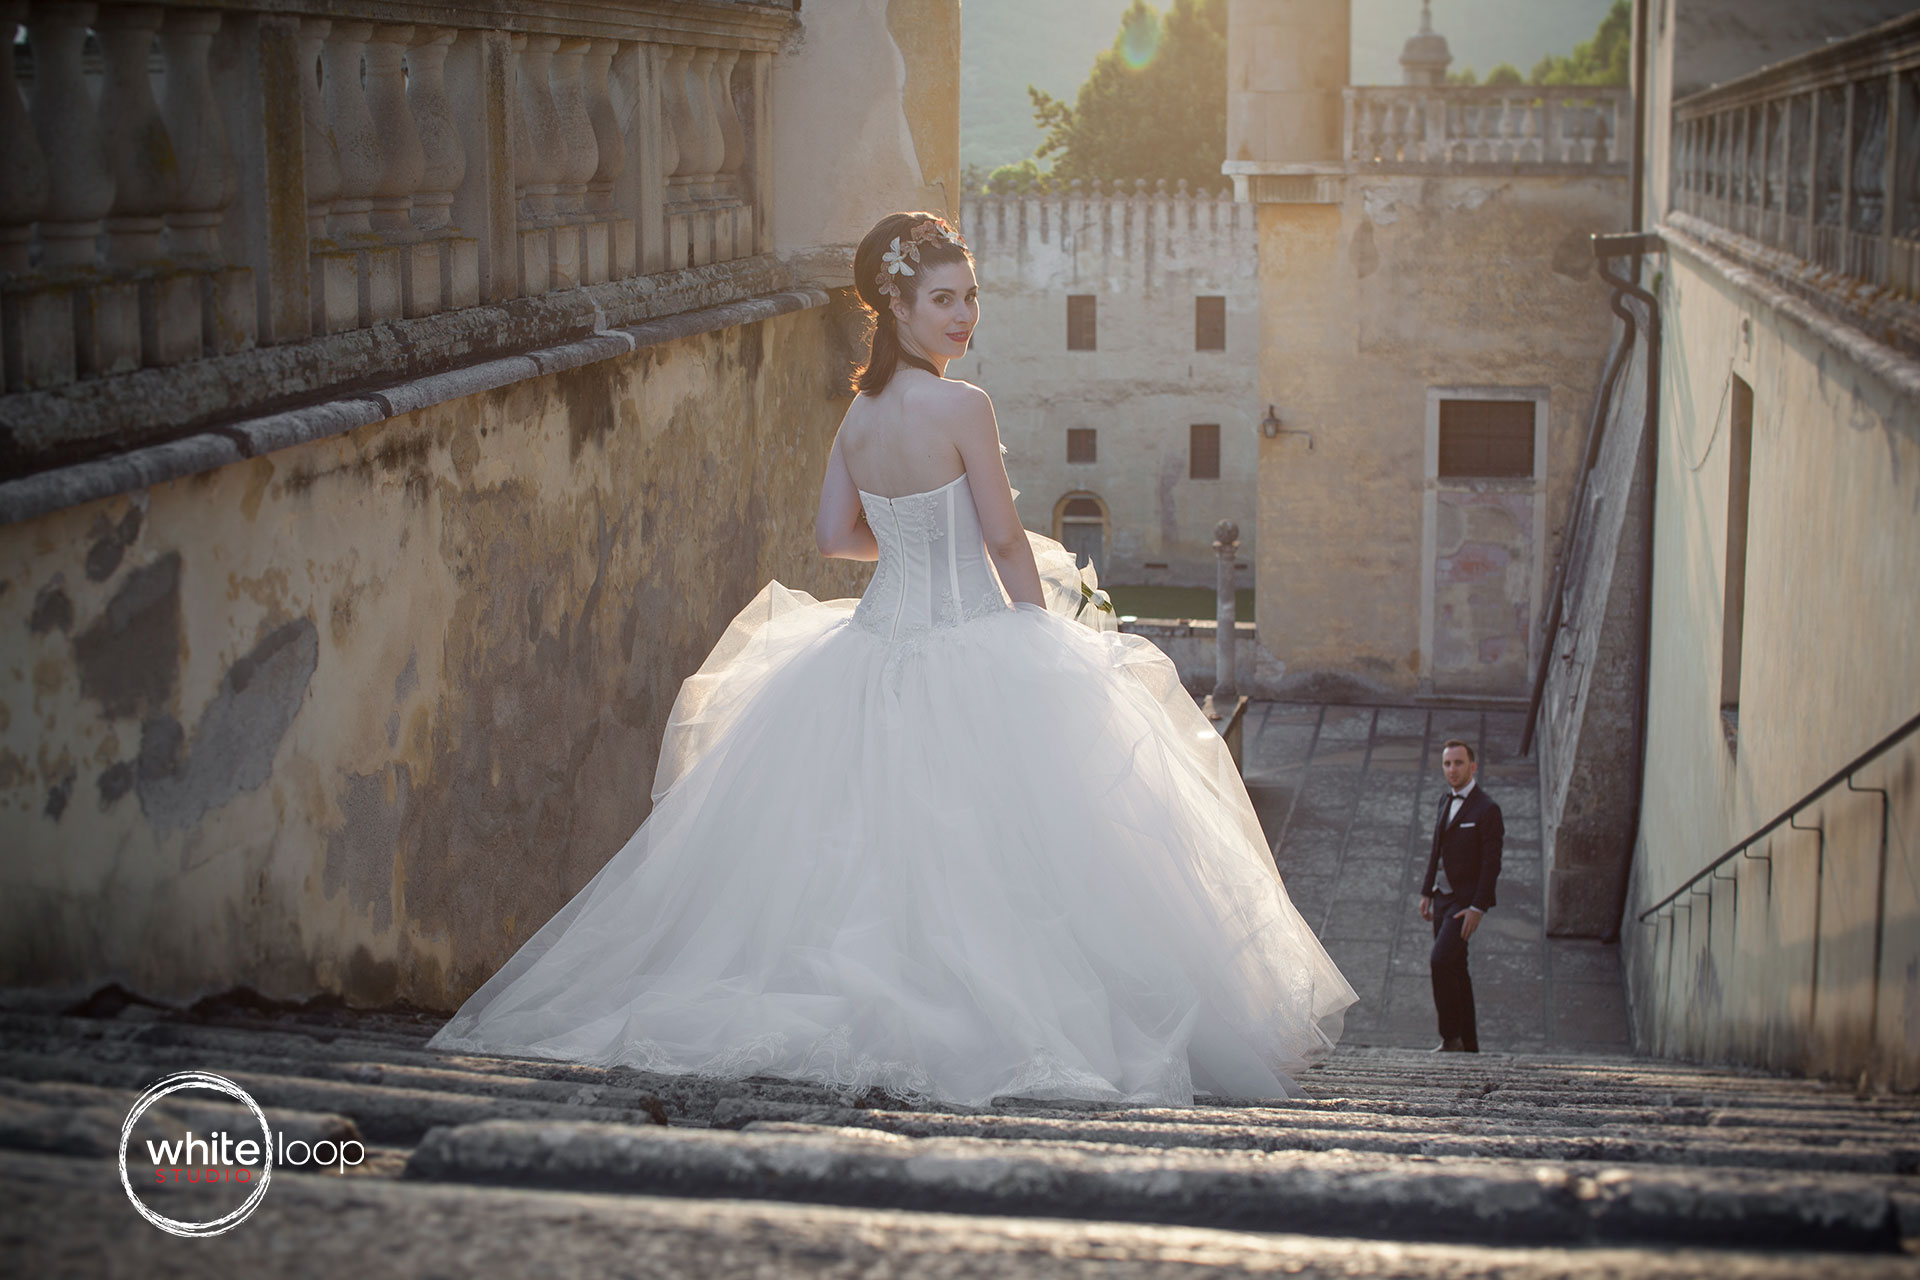 Meanwhile the sunset begins, the groom is waiting for the bride down the beautiful stairway of the Catajo Castle, Padova, the magical place where ancestors still tell us their love stories through the walls.